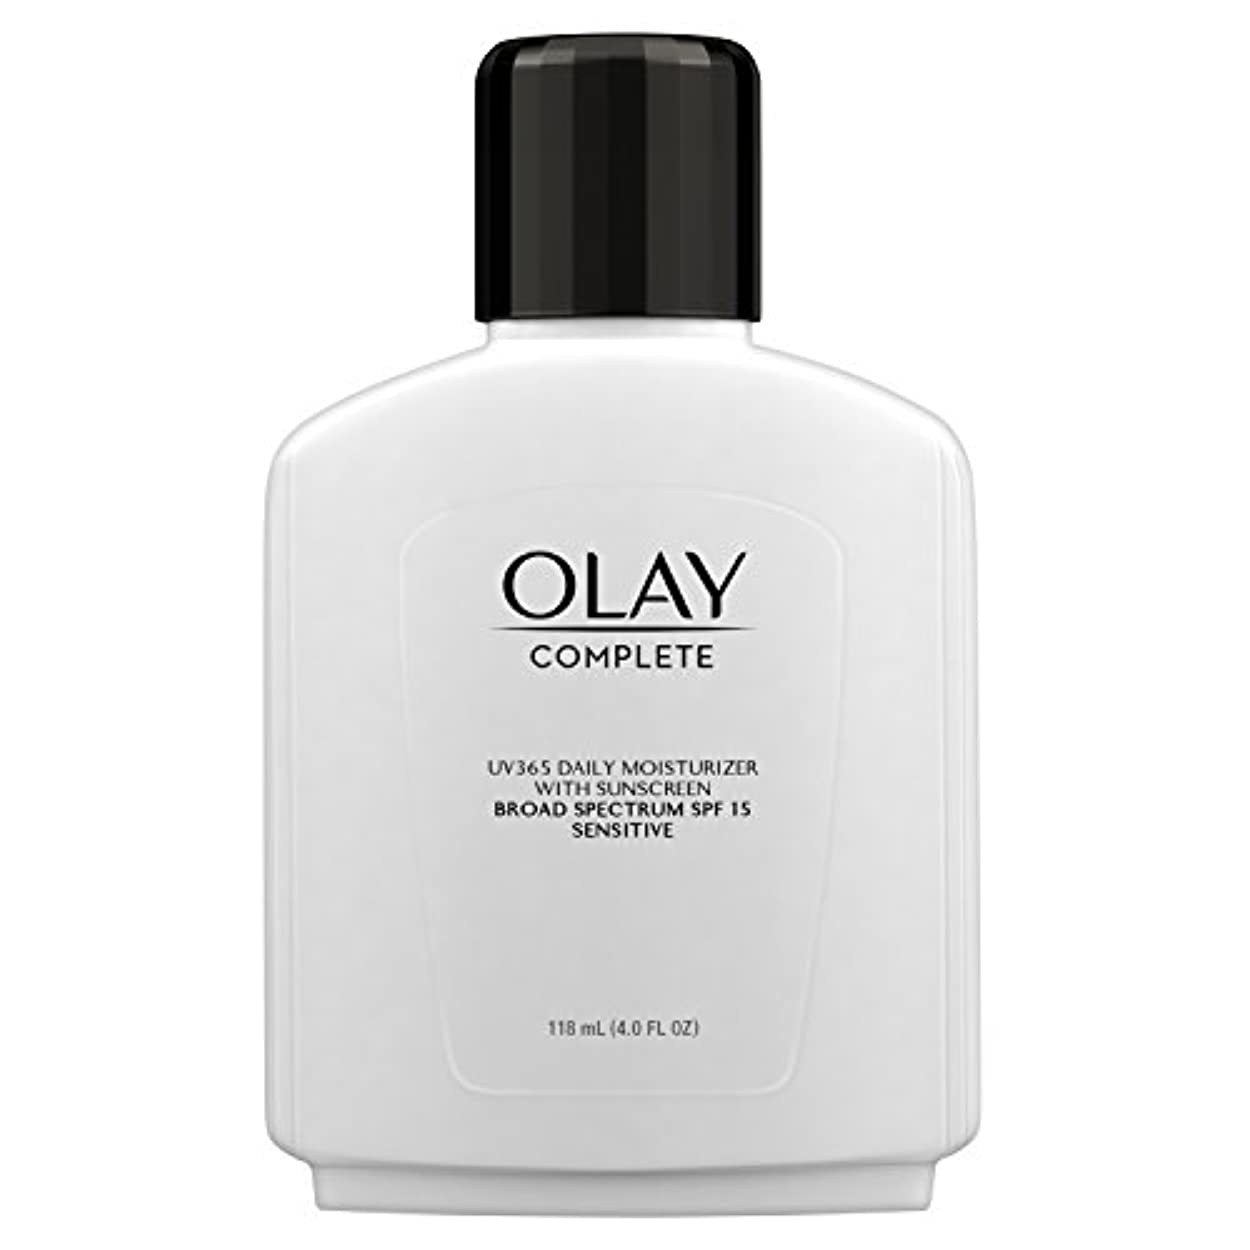 敬の念間欠さわやかOlay Complete All Day Moisture Lotion UV Defense SPF 15, Sensitive Skin, 4 fl oz (118 ml) (1 pack) (並行輸入品)